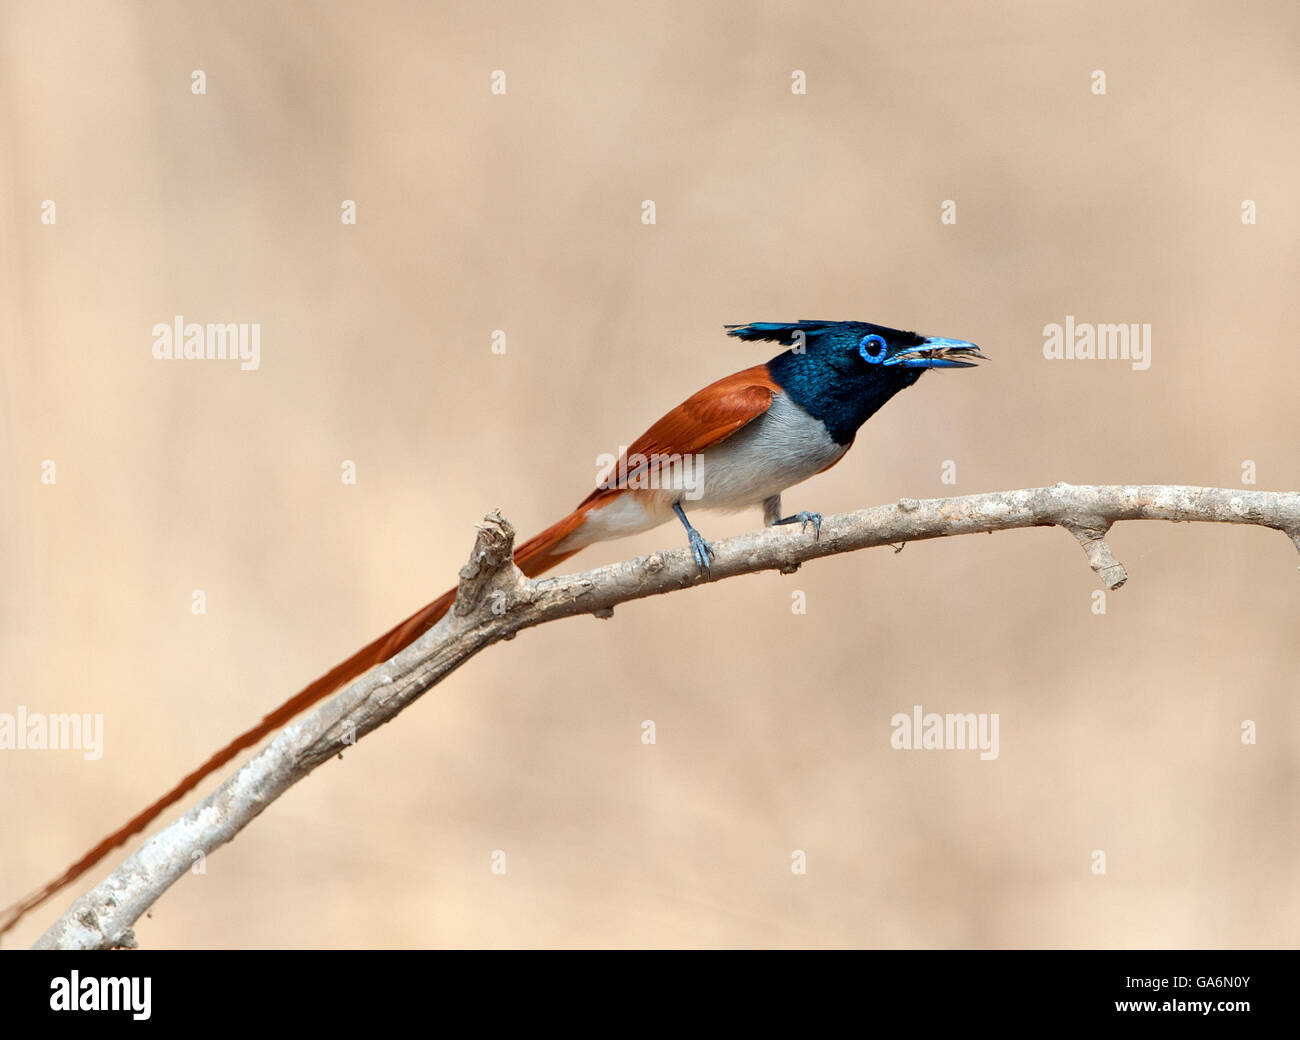 The image of Paradise Flycatcher (Terpsiphone paradisi) was taken in Ranthambore national park, India Stock Photo